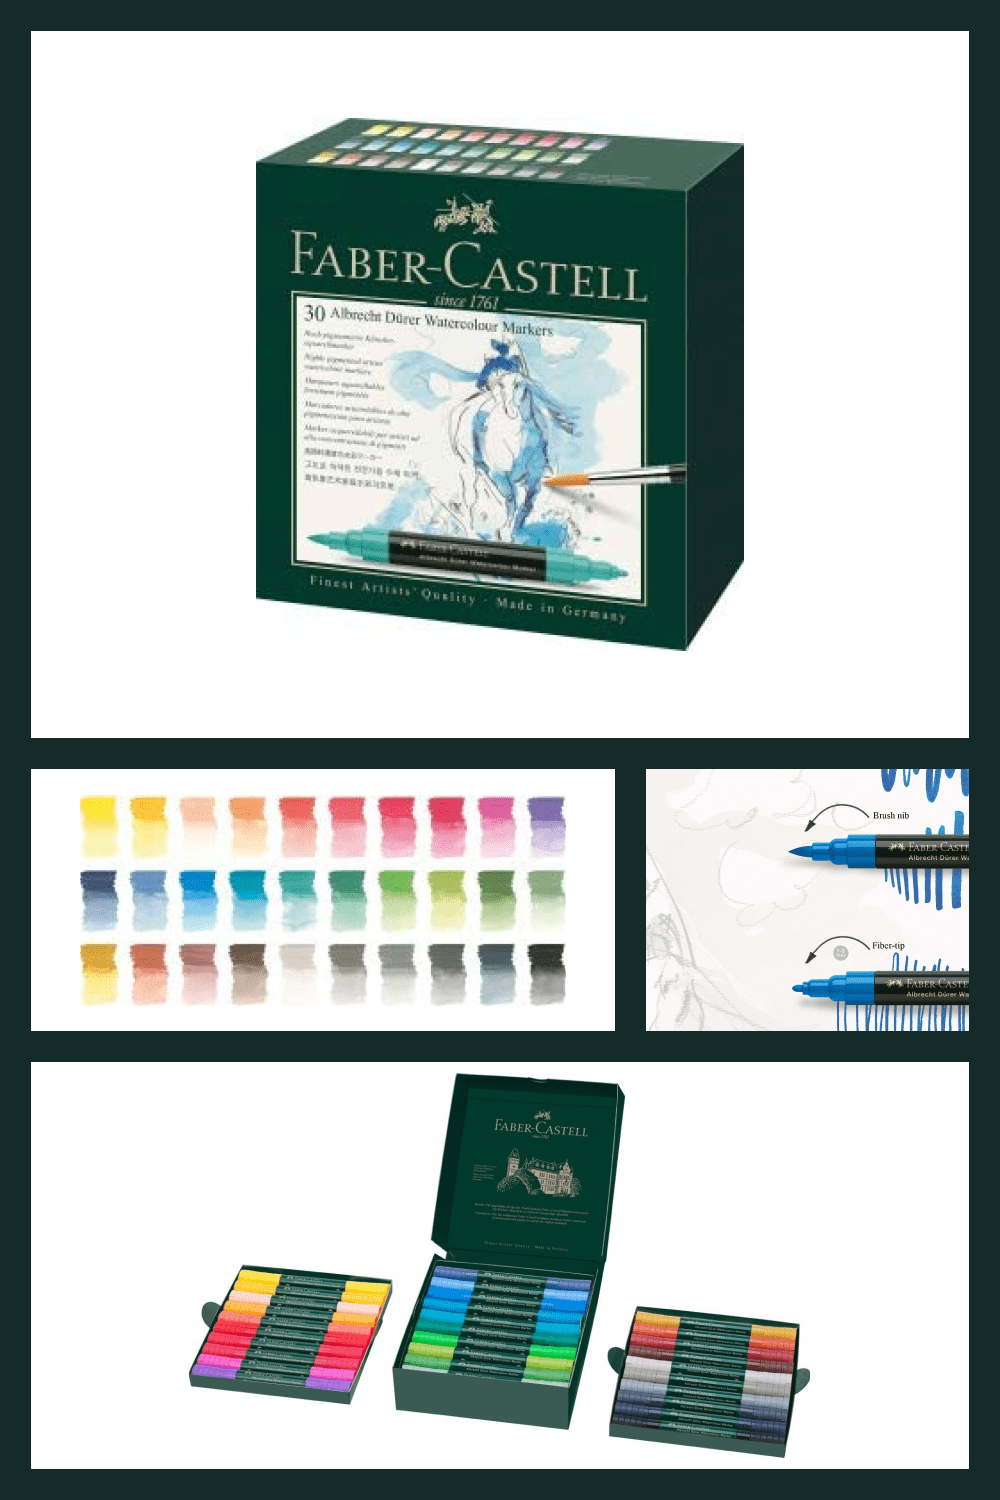 Watercolor Markers that are highly versatile and savvy to add a watercolor wash to a variety of art projects.